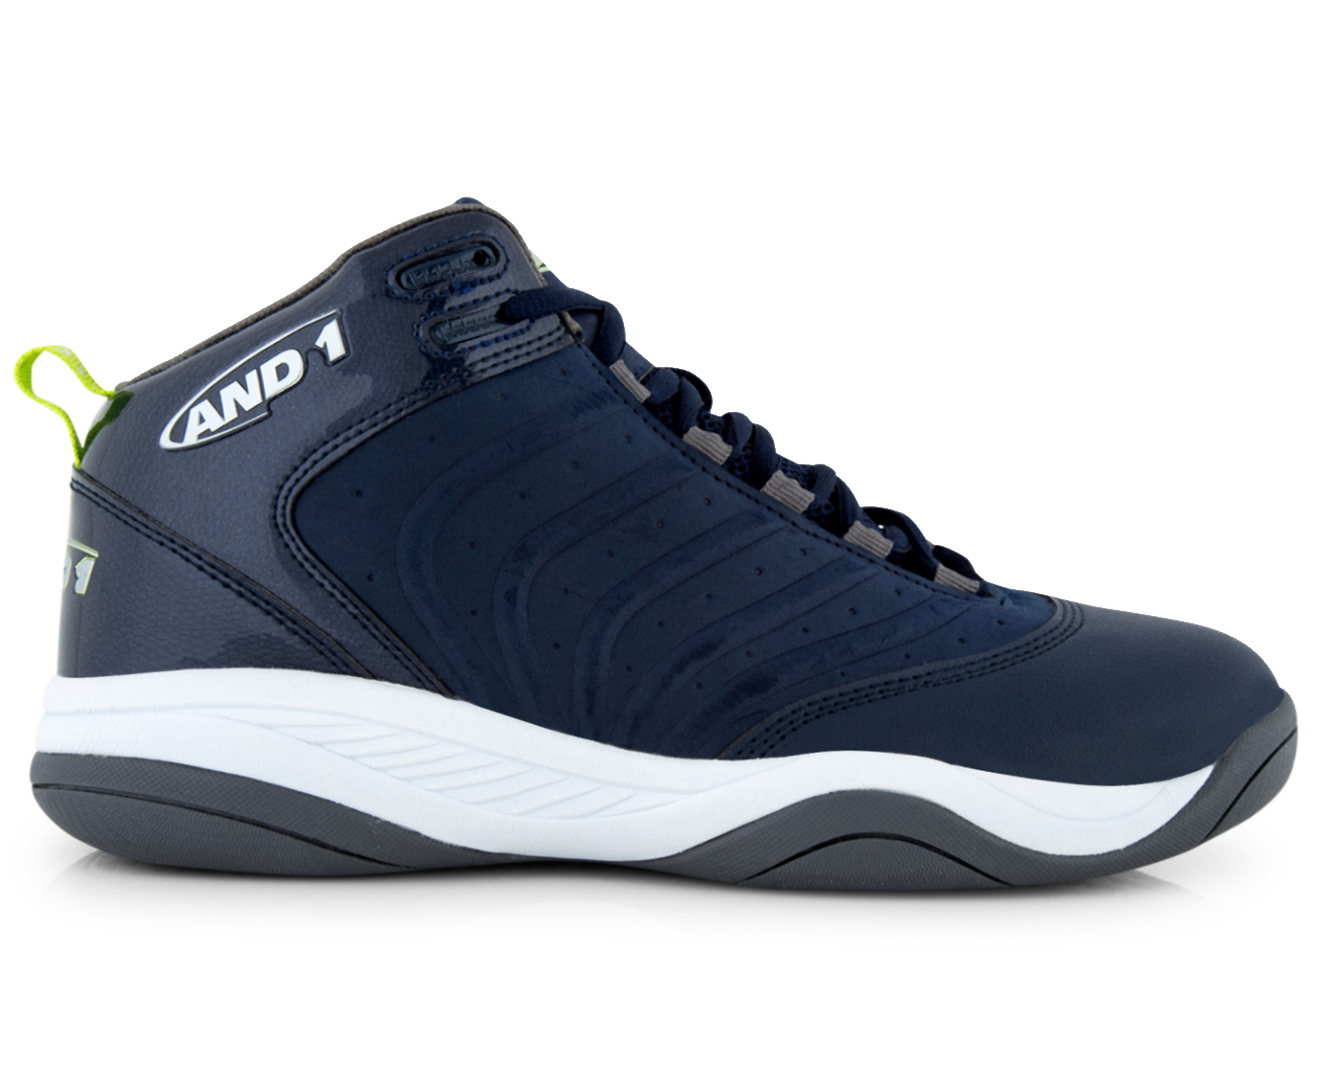 AND1 Men's The Drive Mid Shoe Navy/Yellow/Wihte